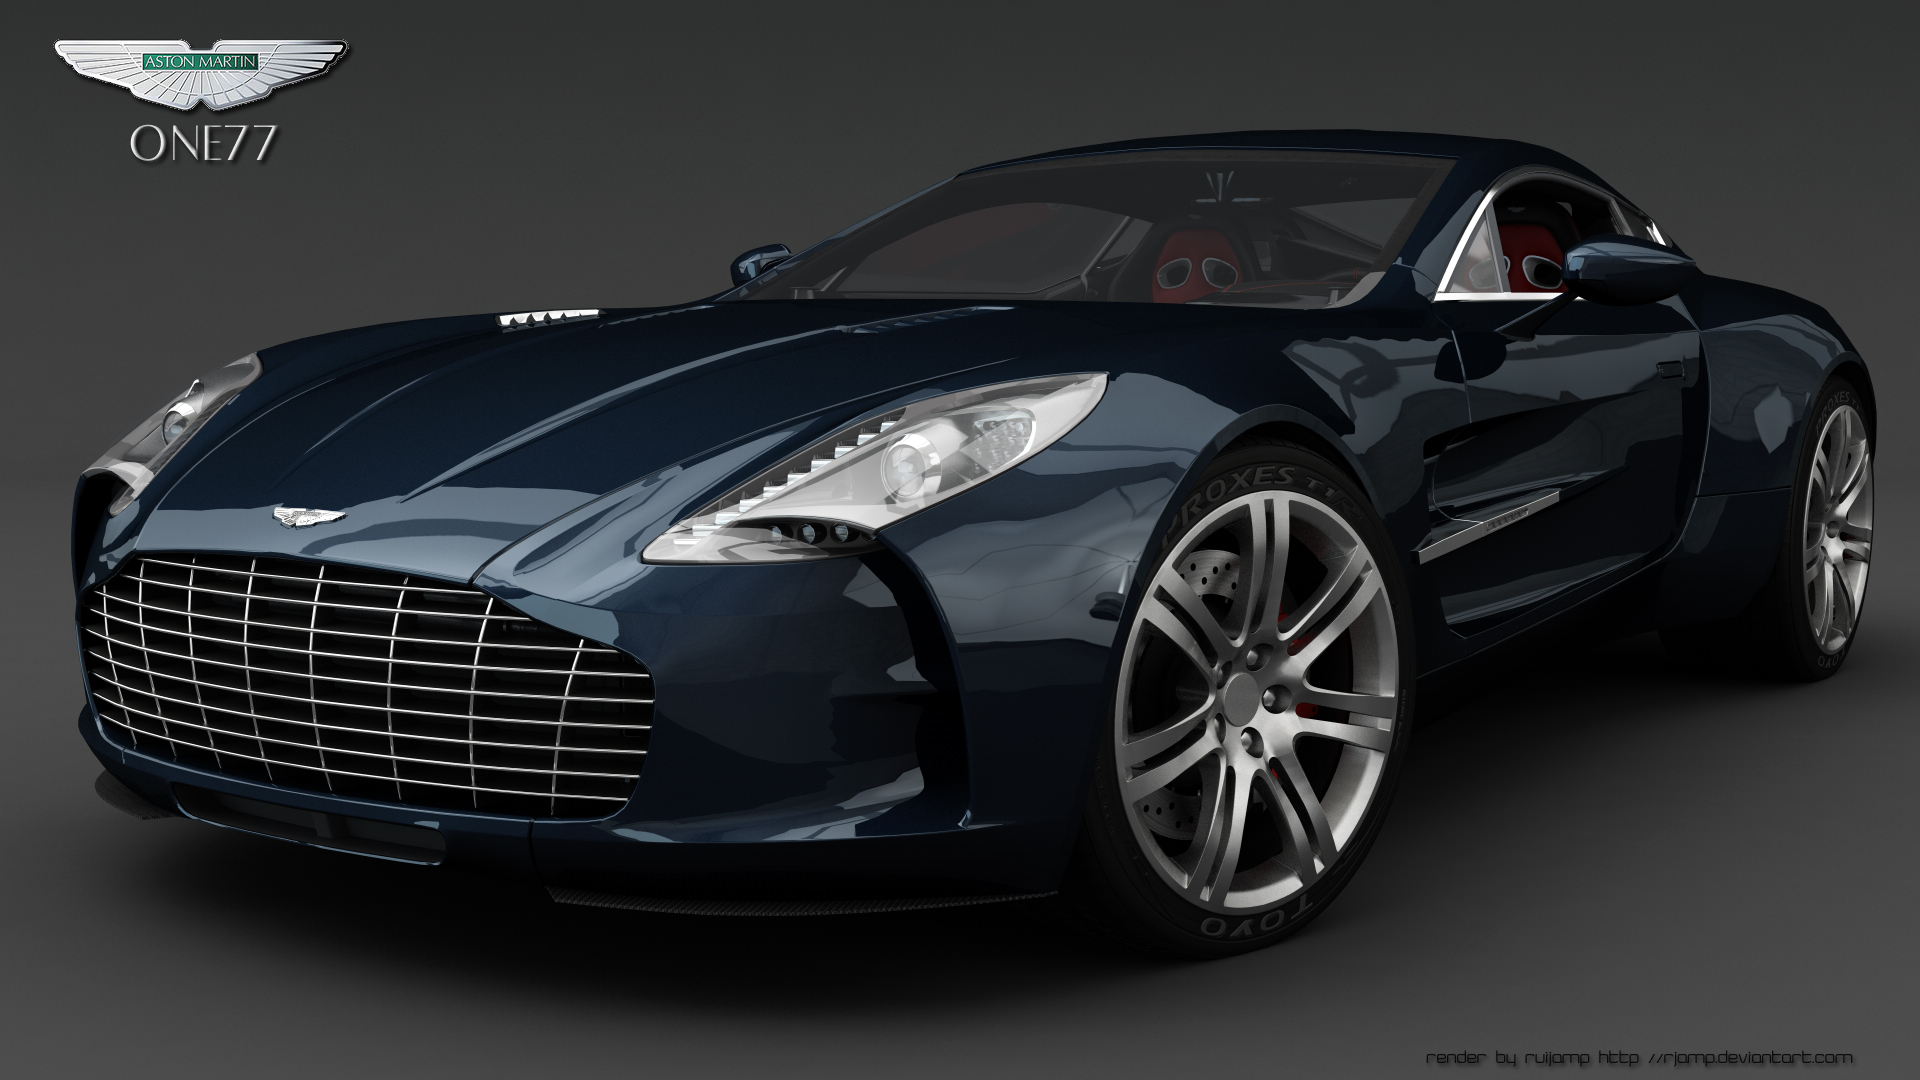 aston martin one 77 wallpaper by martin driver one year ago email. Black Bedroom Furniture Sets. Home Design Ideas